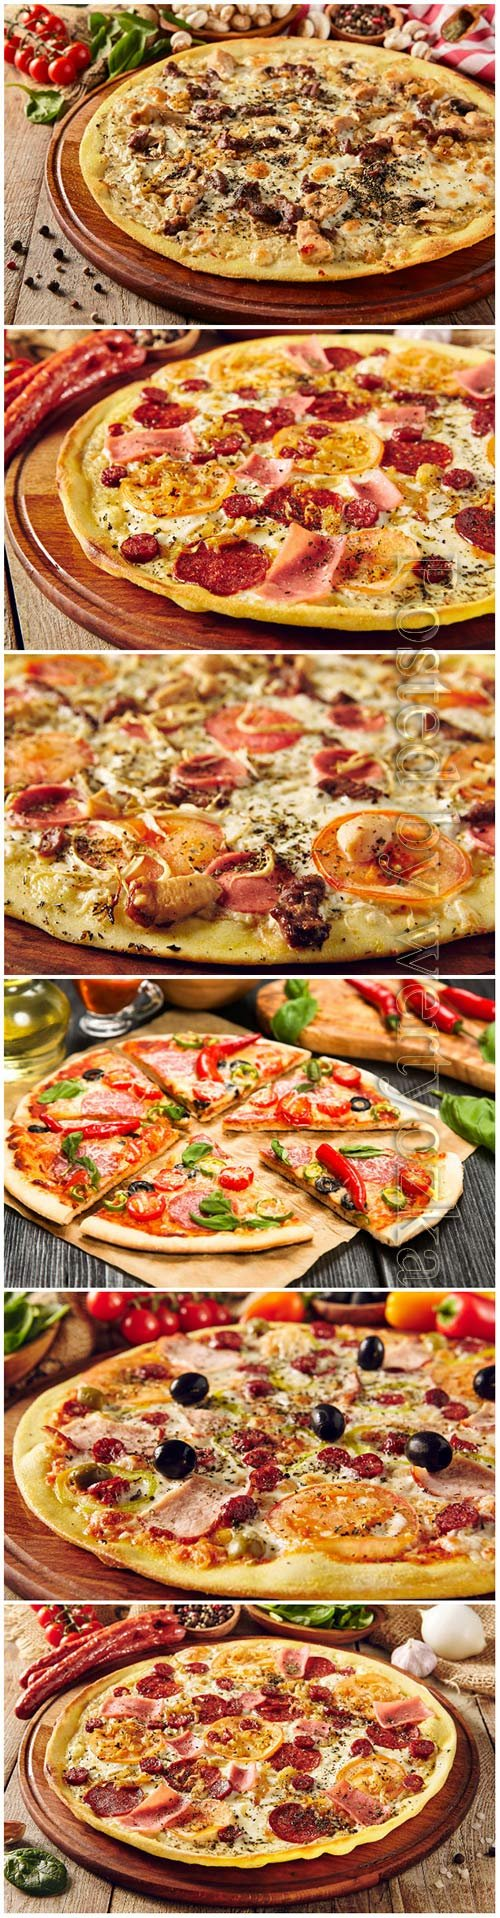 Tasty pizza on a wooden board